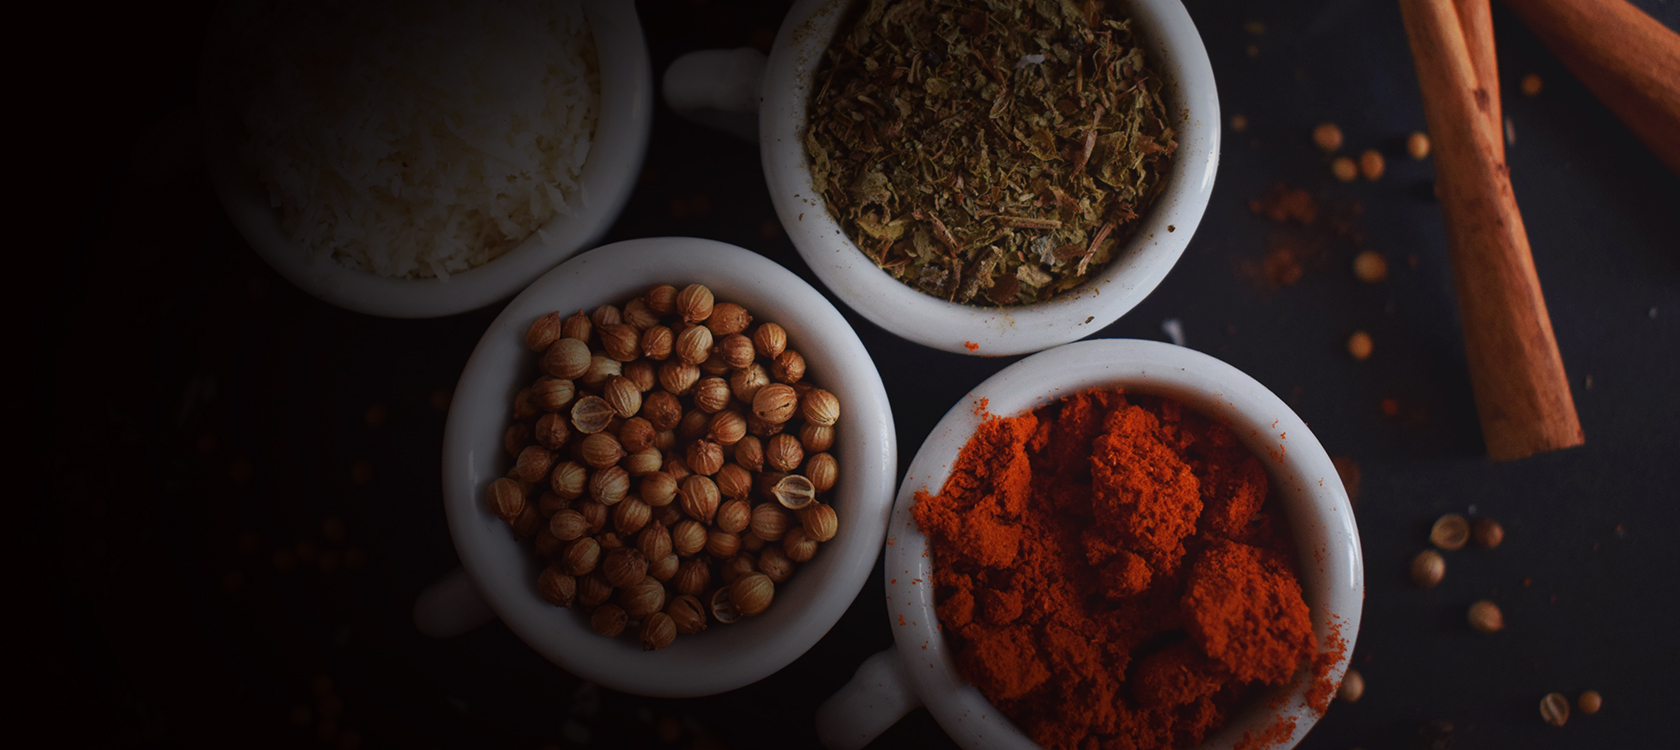 ingredients flavourings spices